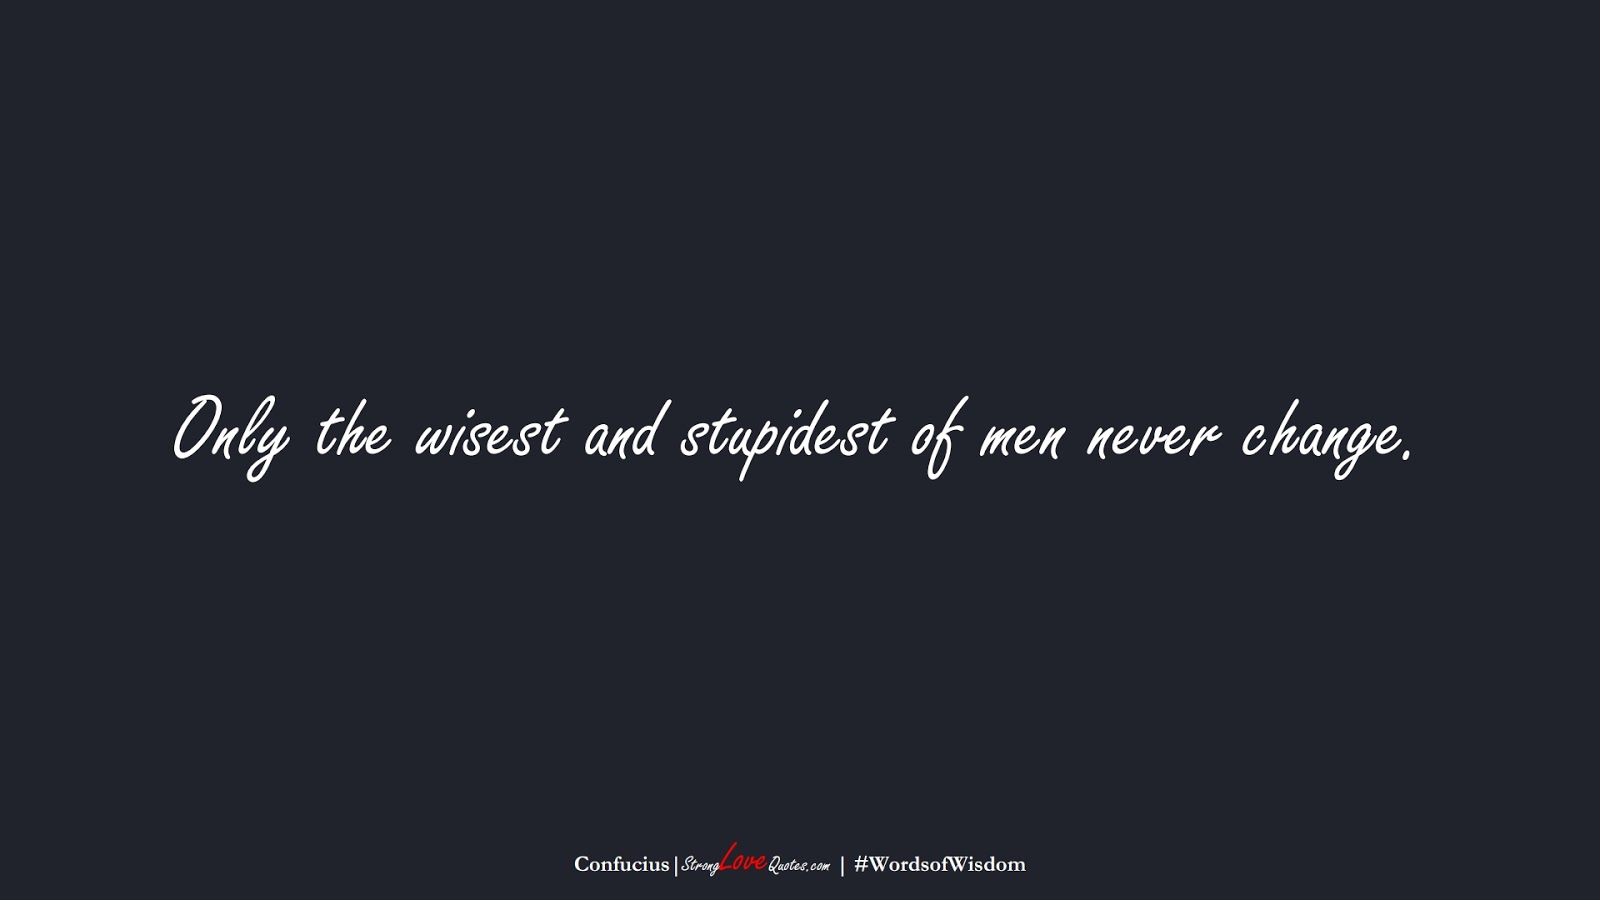 Only the wisest and stupidest of men never change. (Confucius);  #WordsofWisdom